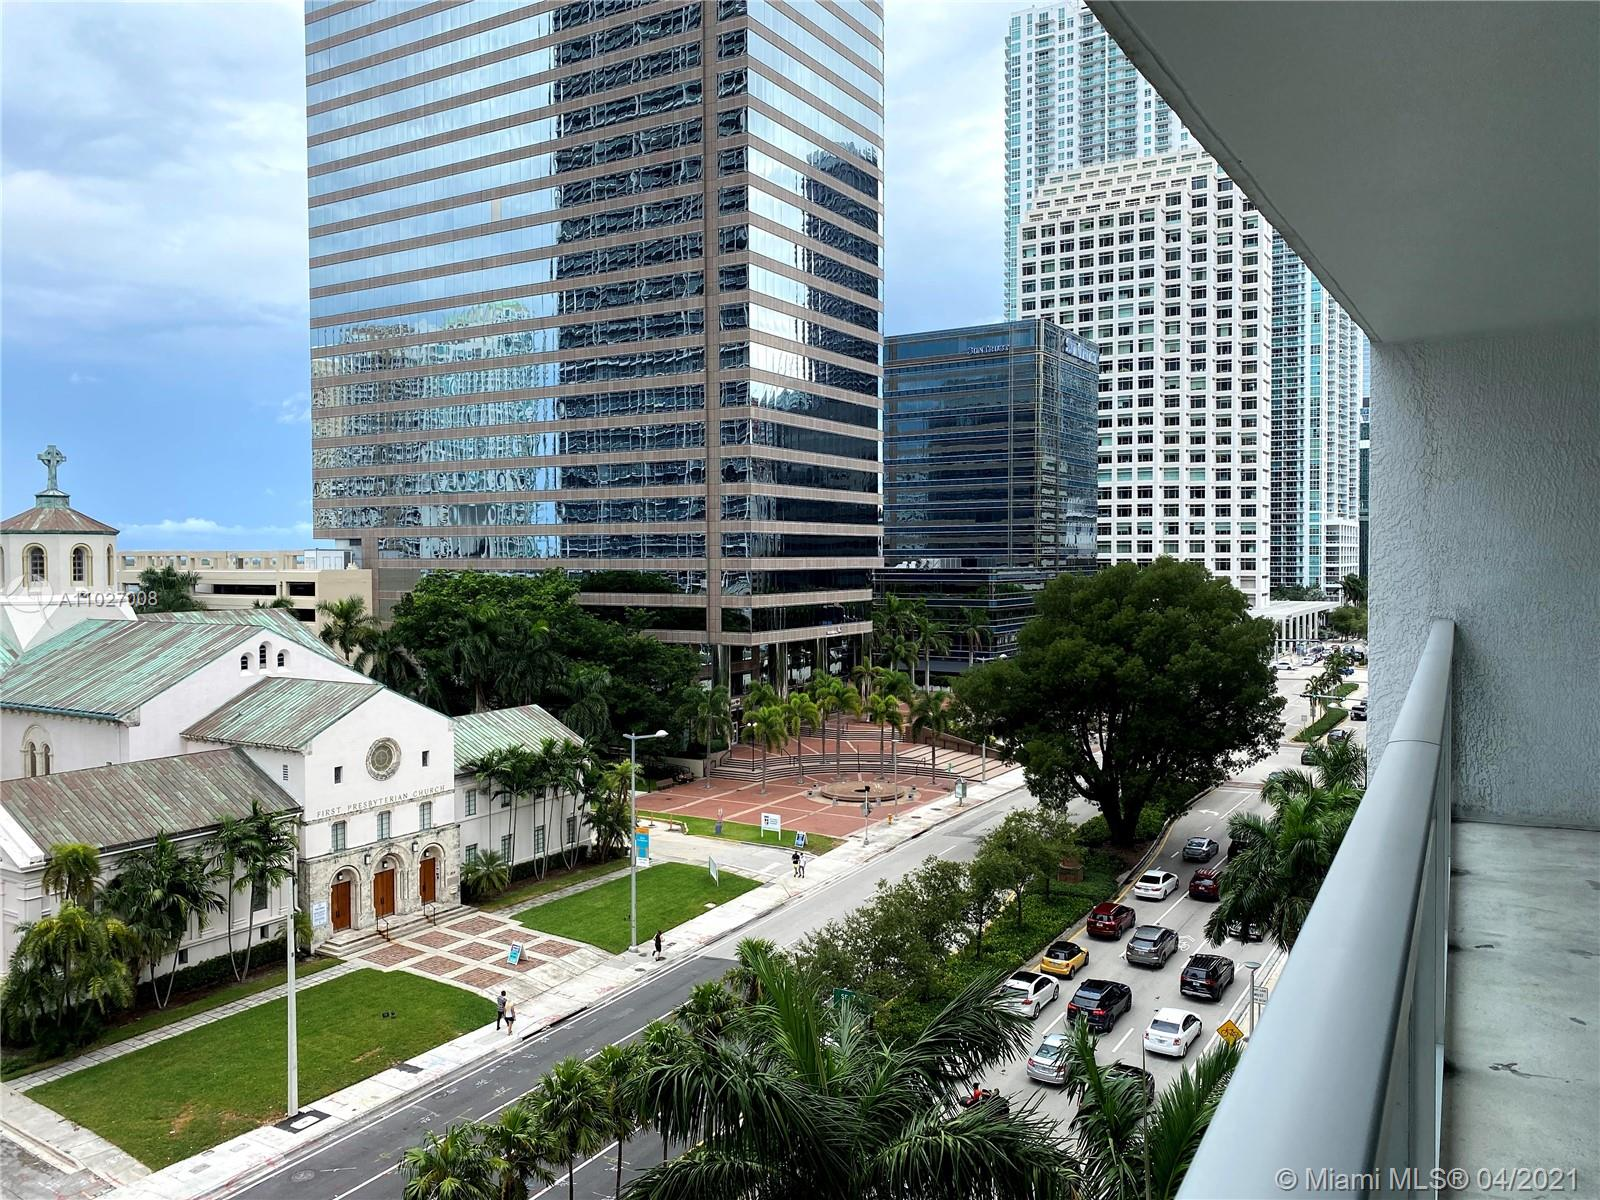 500 Brickell West Tower #700 - 500 Brickell Ave #700, Miami, FL 33131